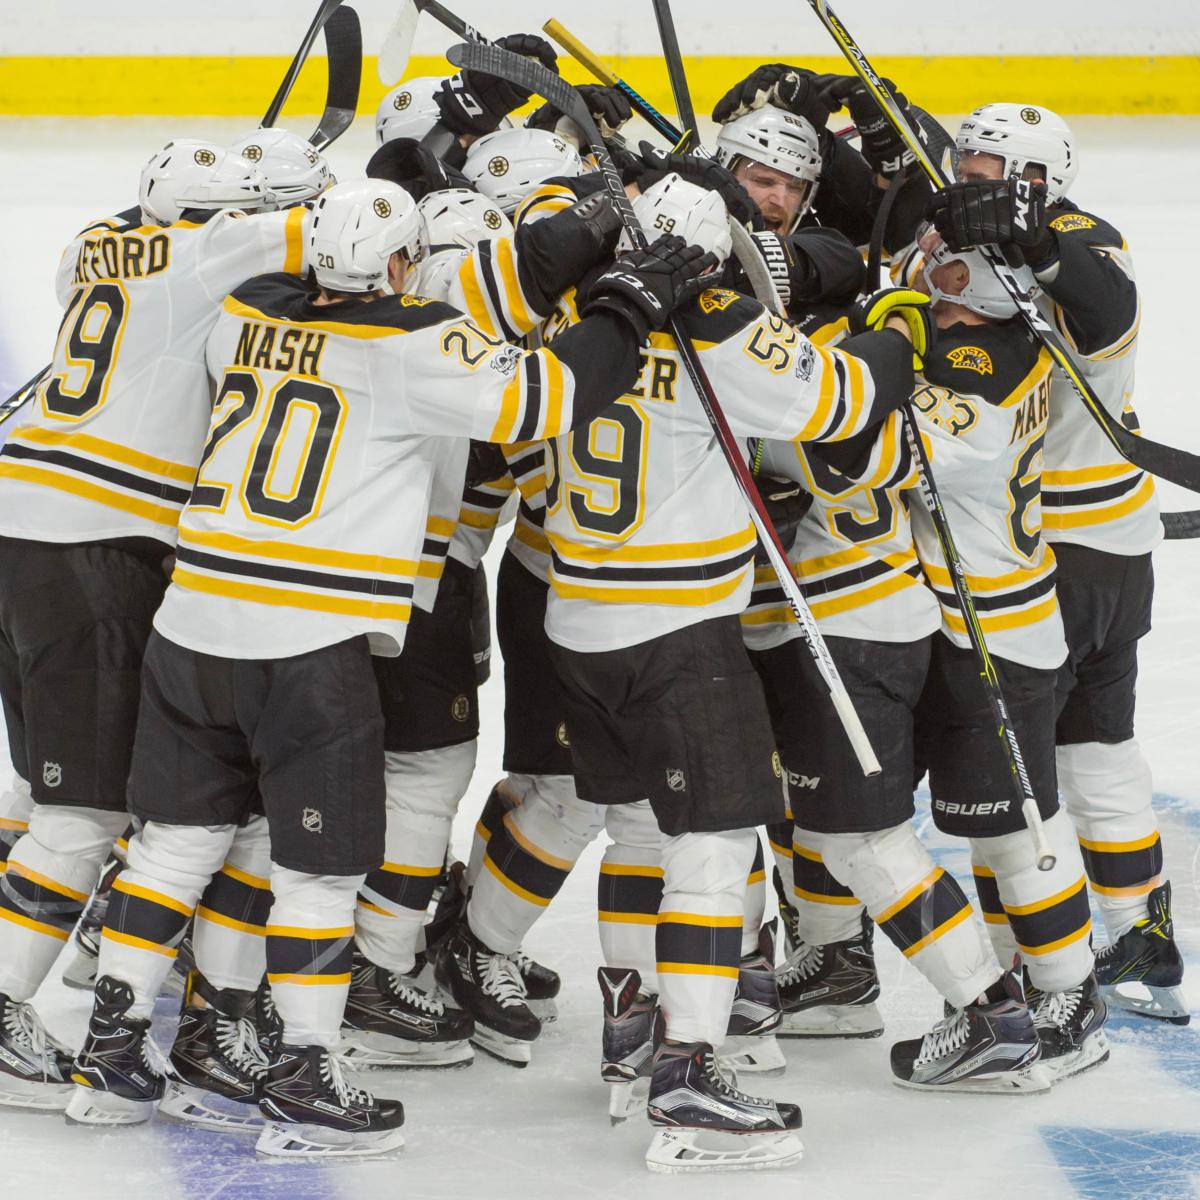 NHL Playoff Schedule 2017: Stanley Cup Guide, Postseason